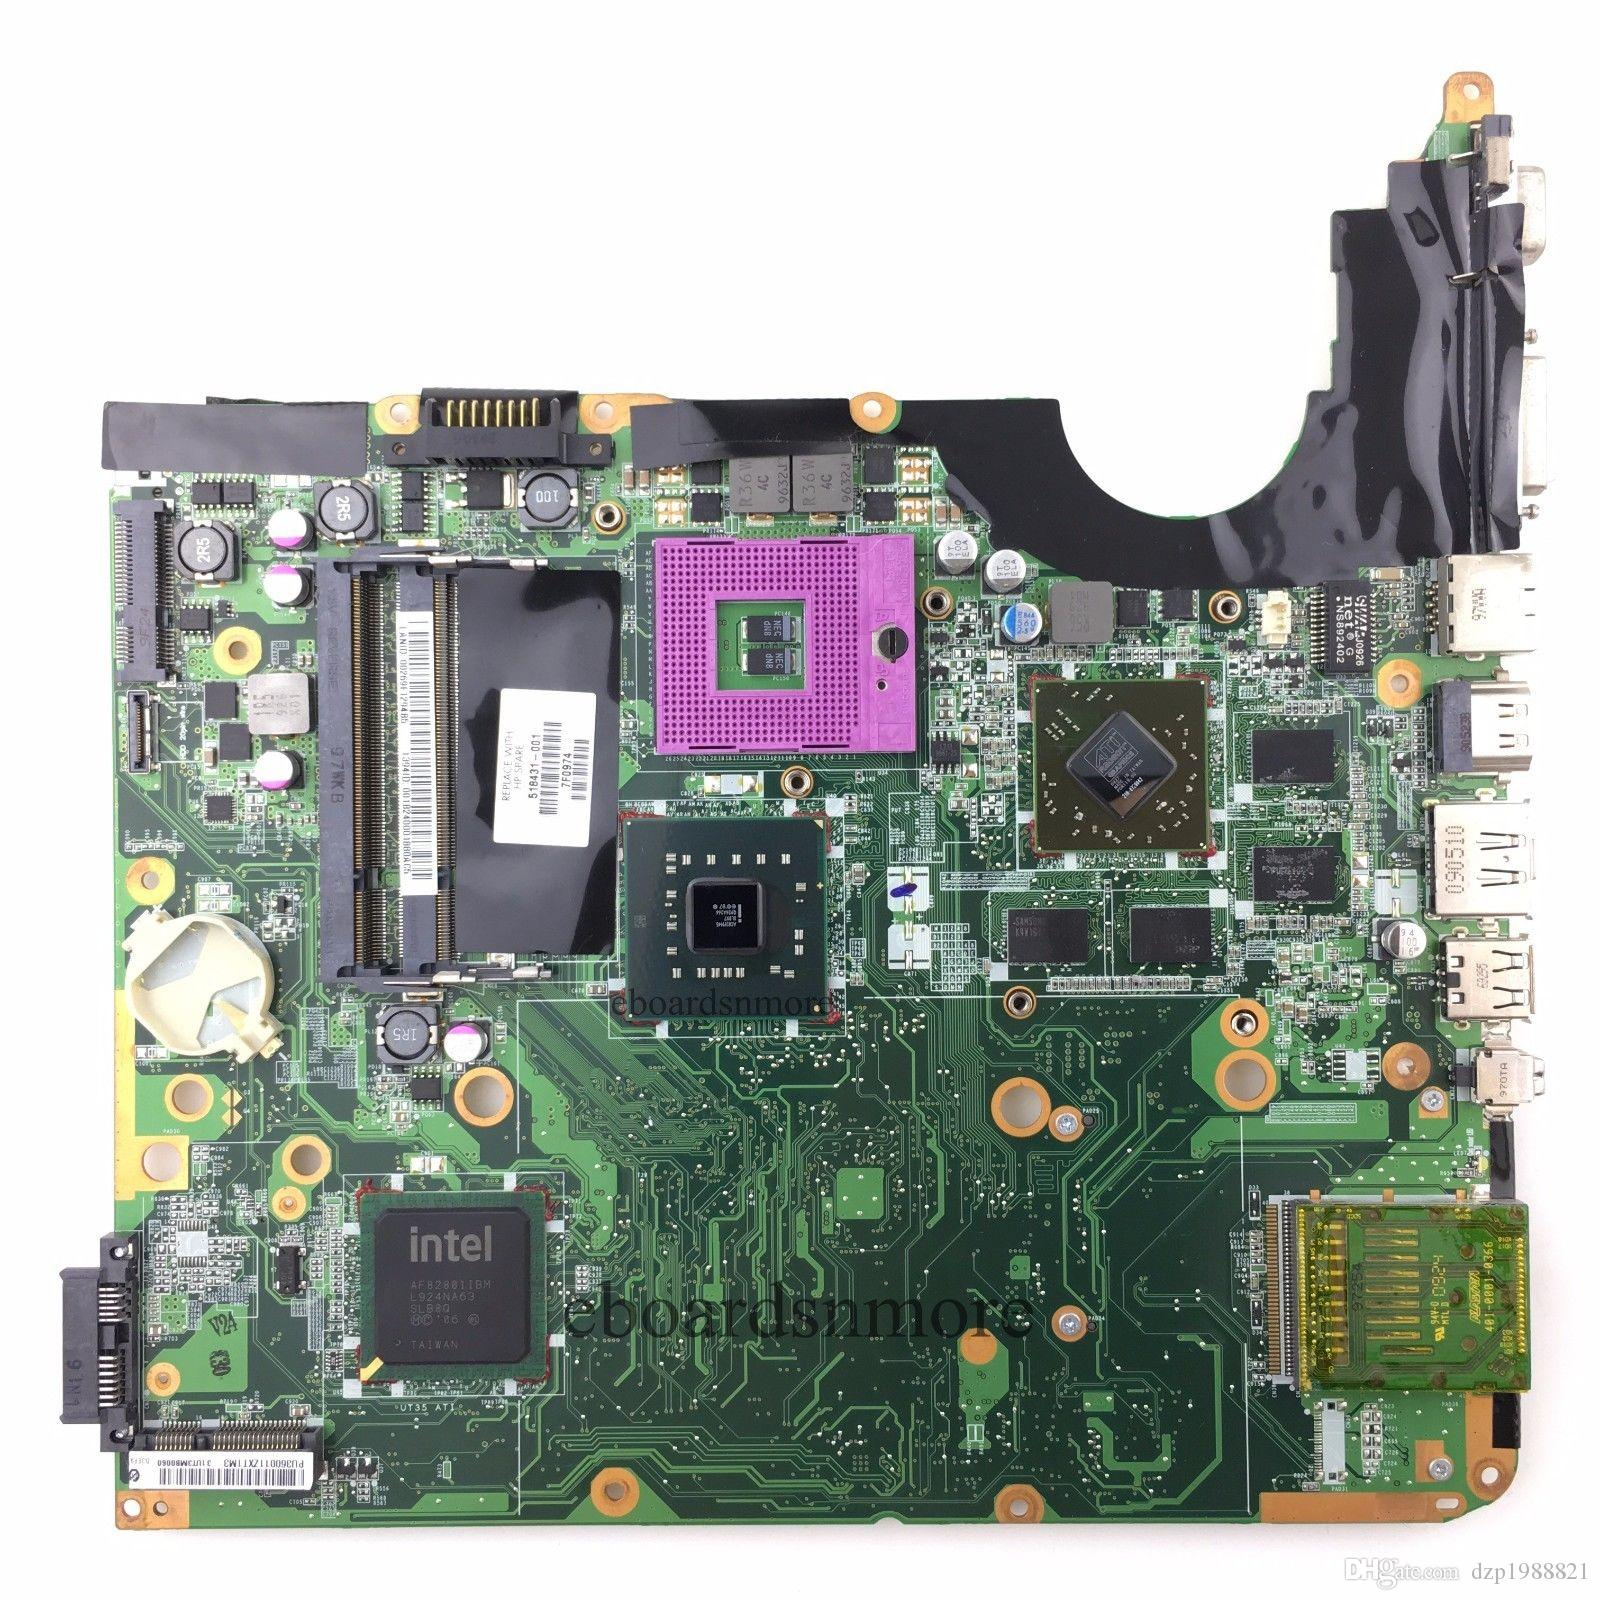 518431-001 board for HP pavilion DV6 laptop motherboard DDR2 with intel chipset with ATI Mobility Radeon HD4650 graphics 1GB memory